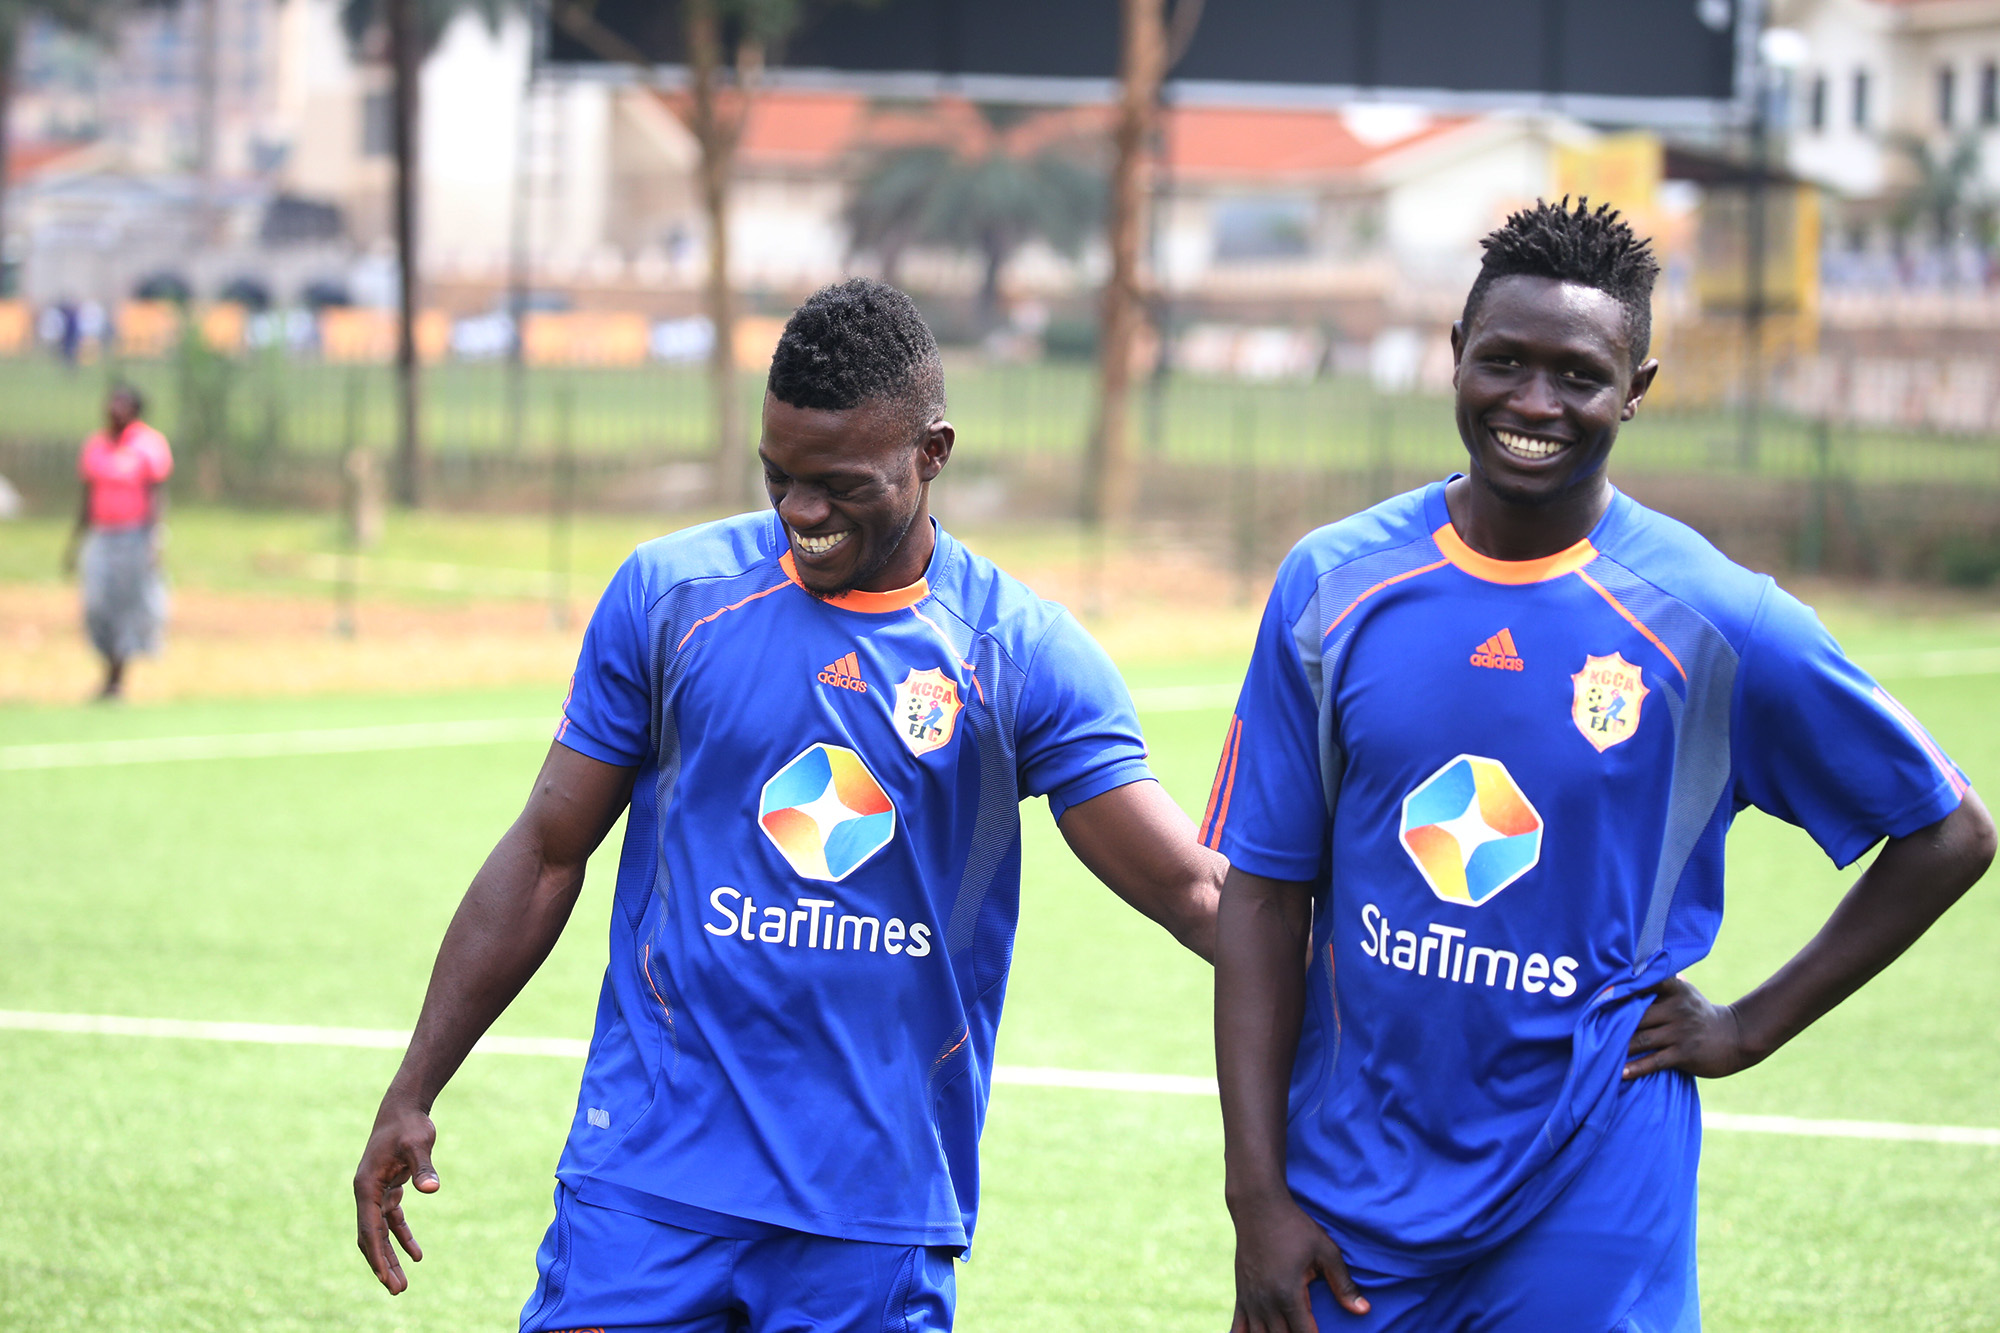 KCCA defender moves to Zambia